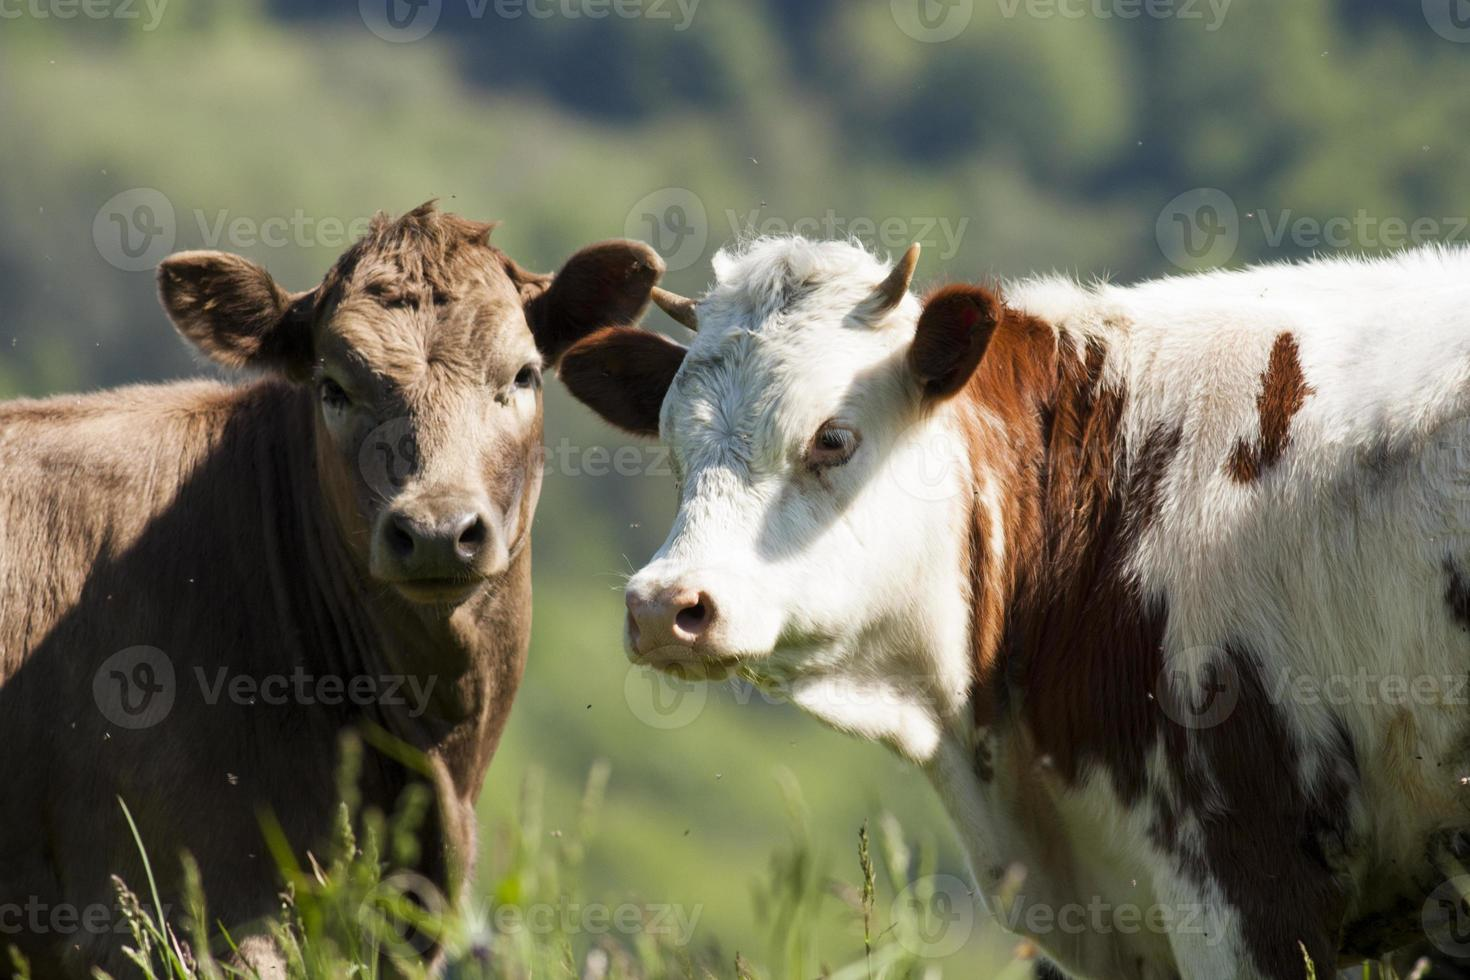 Two young calfs photo